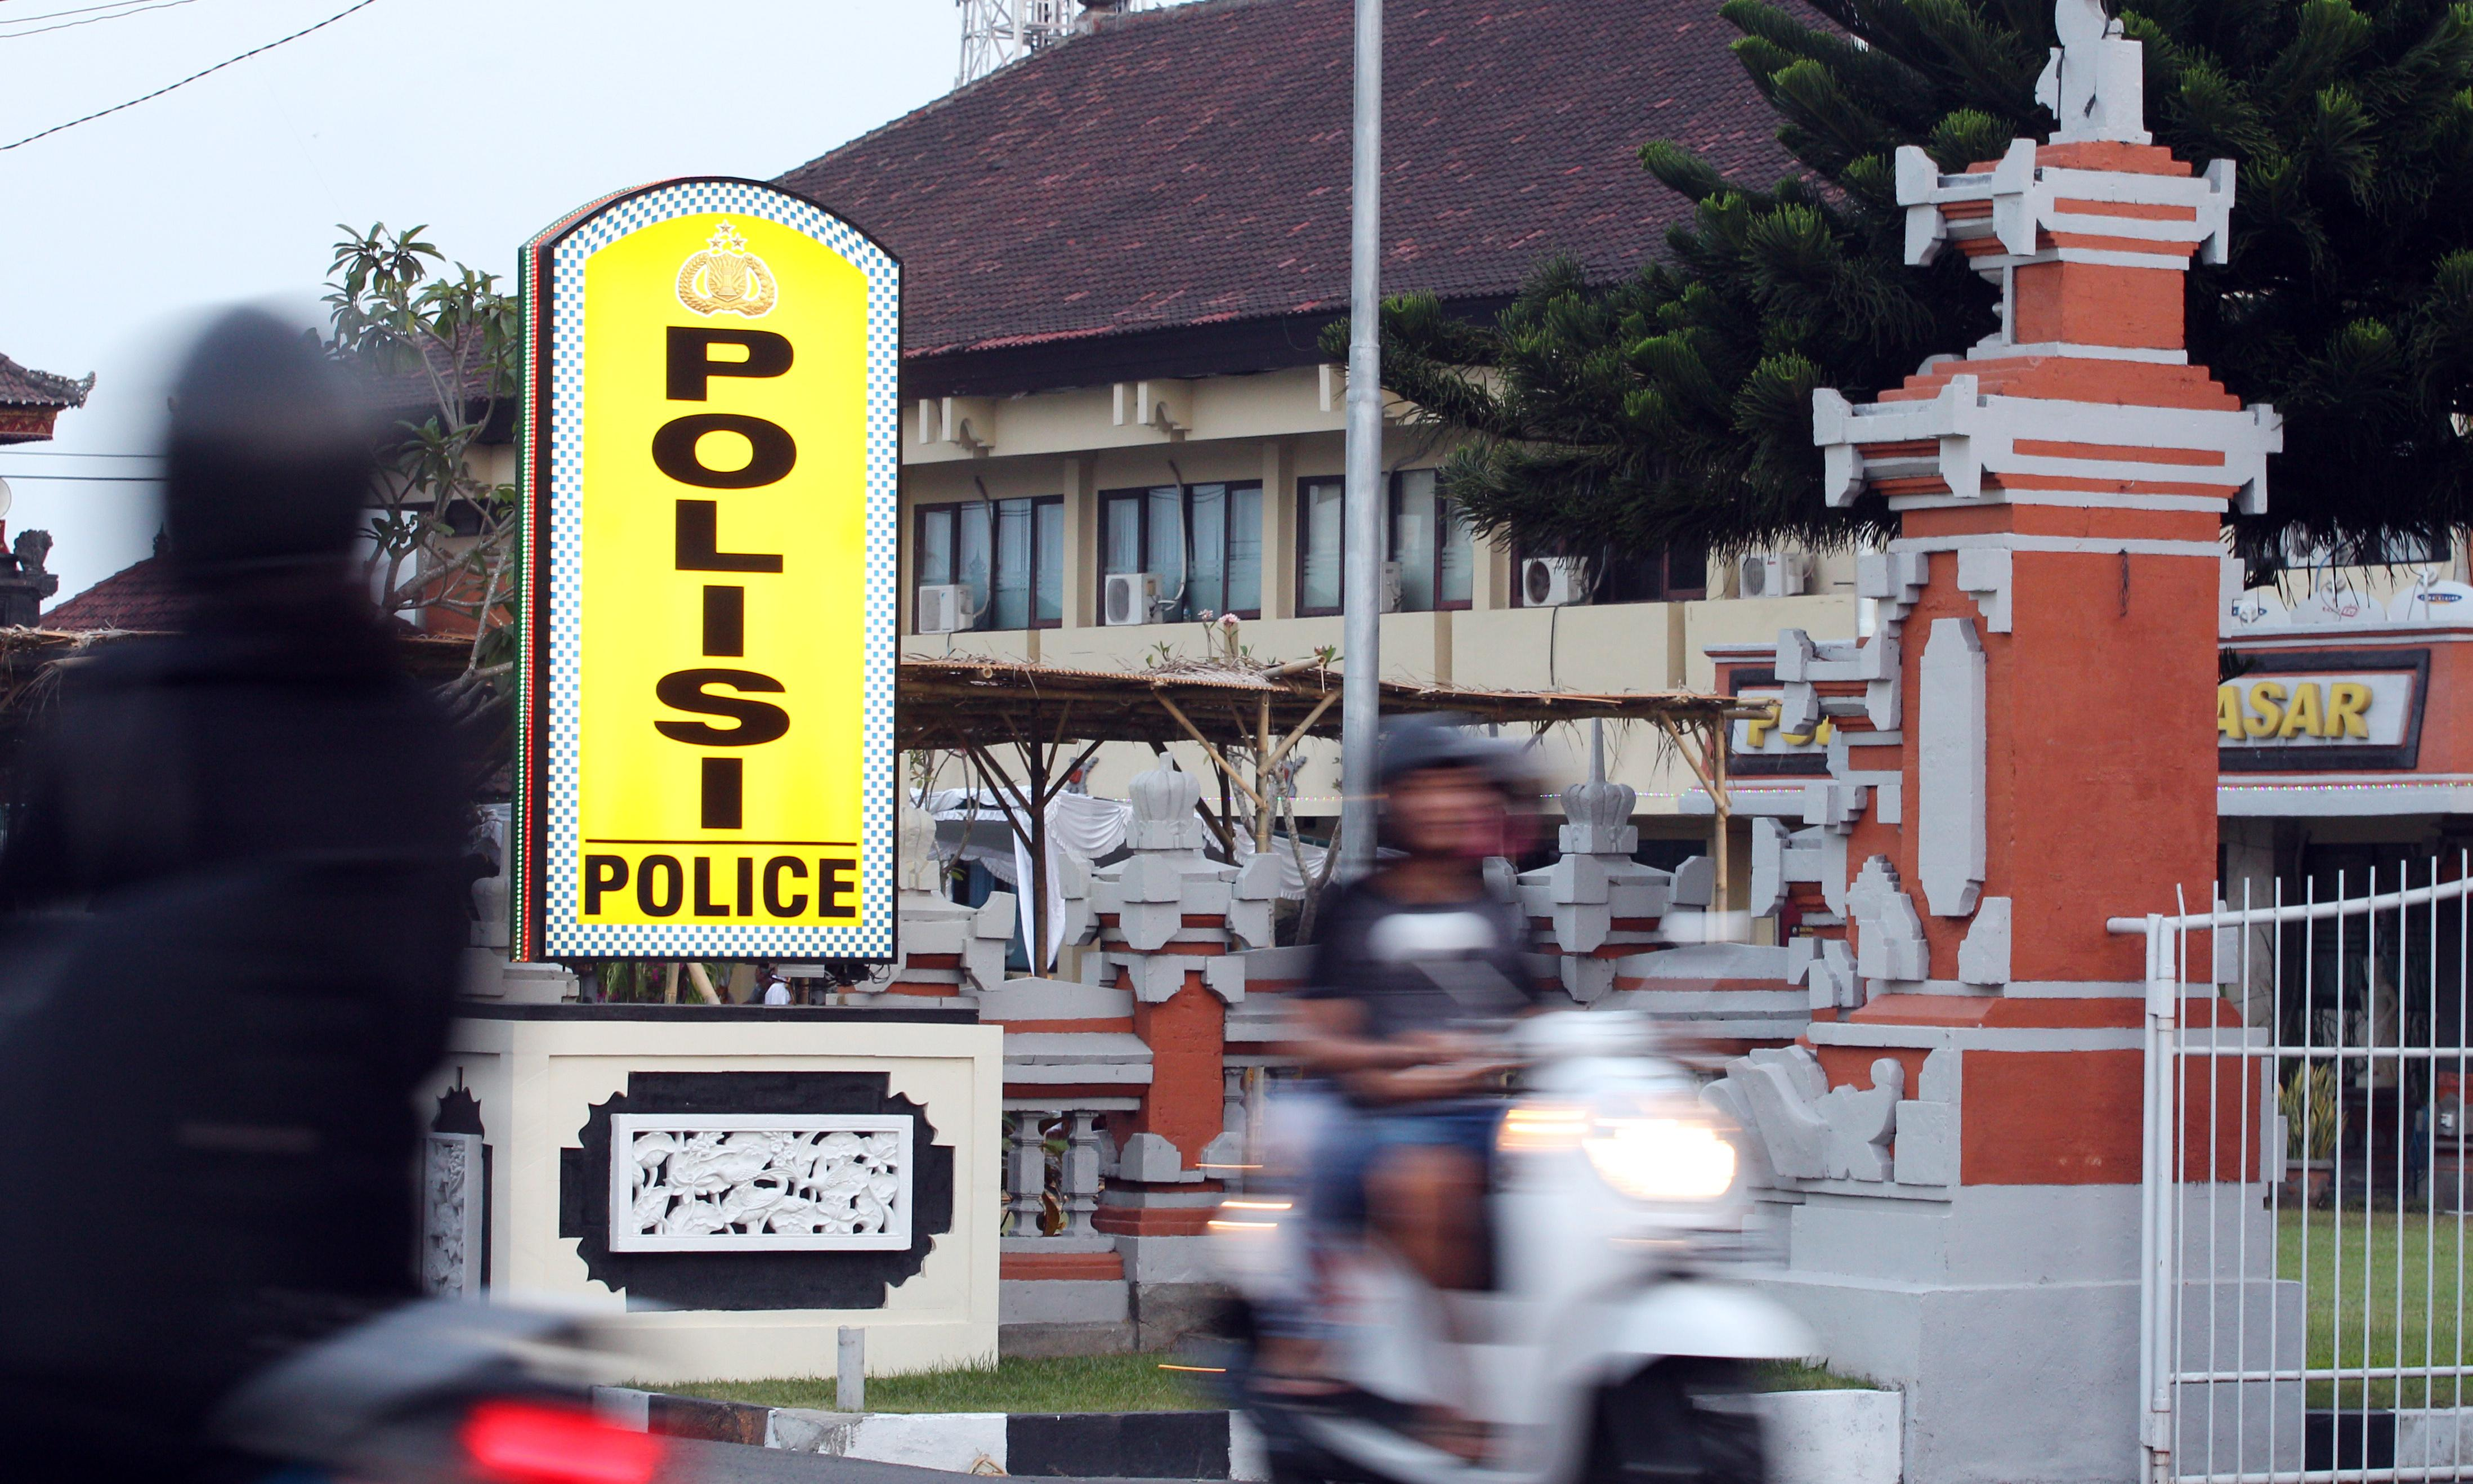 Two Australians arrested in Bali reportedly linked to cocaine trafficking